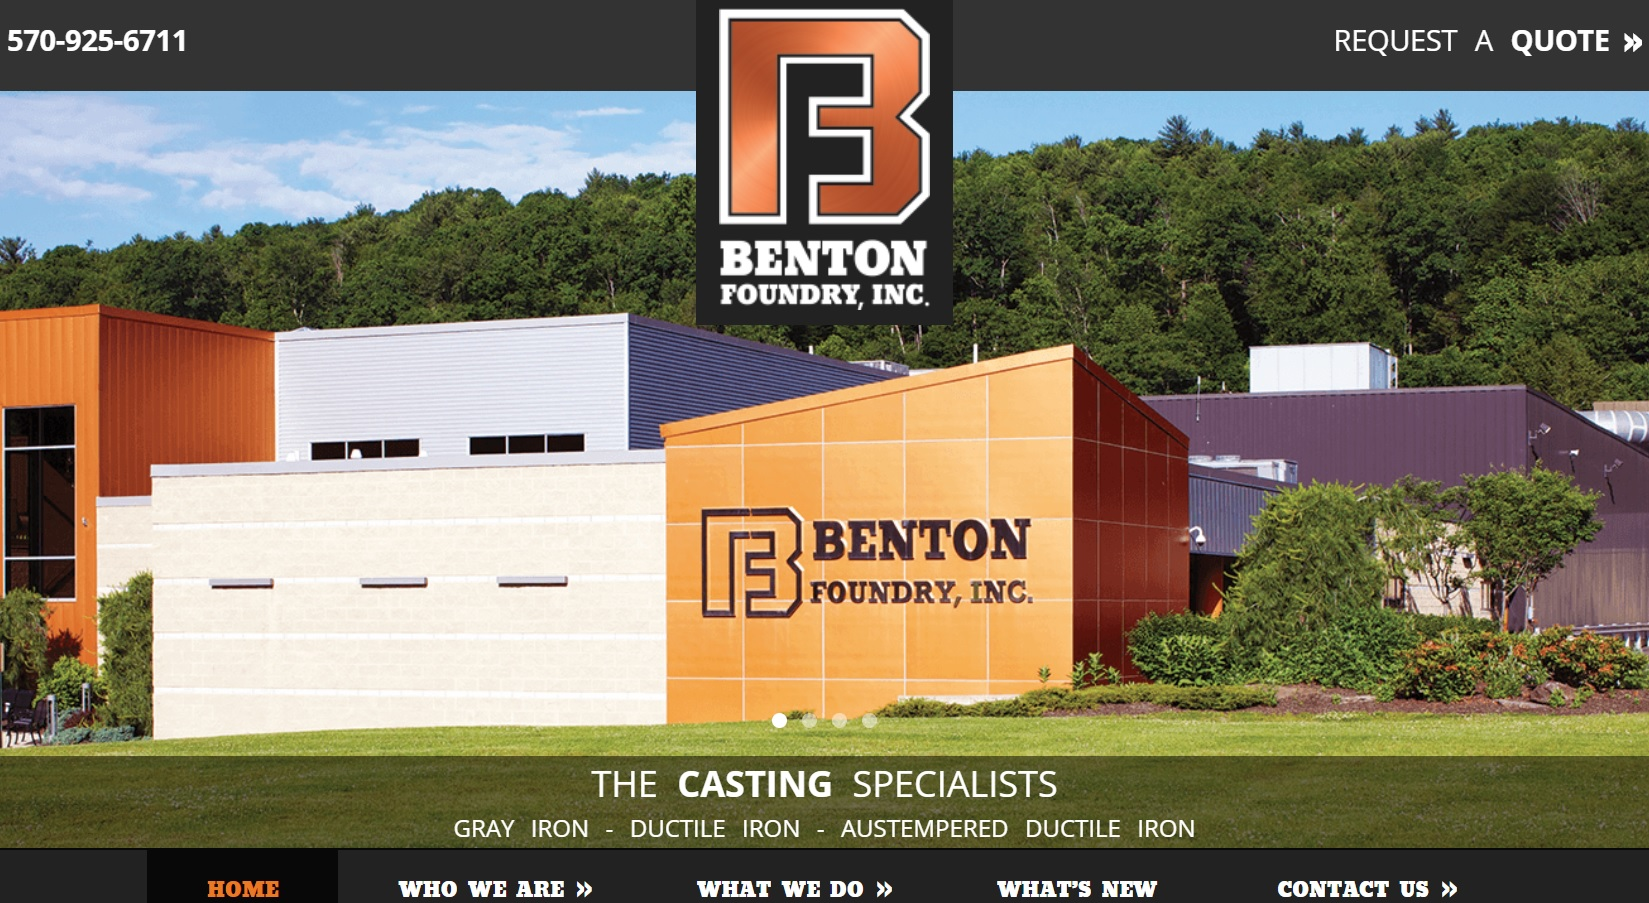 Benton Foundry, Inc.